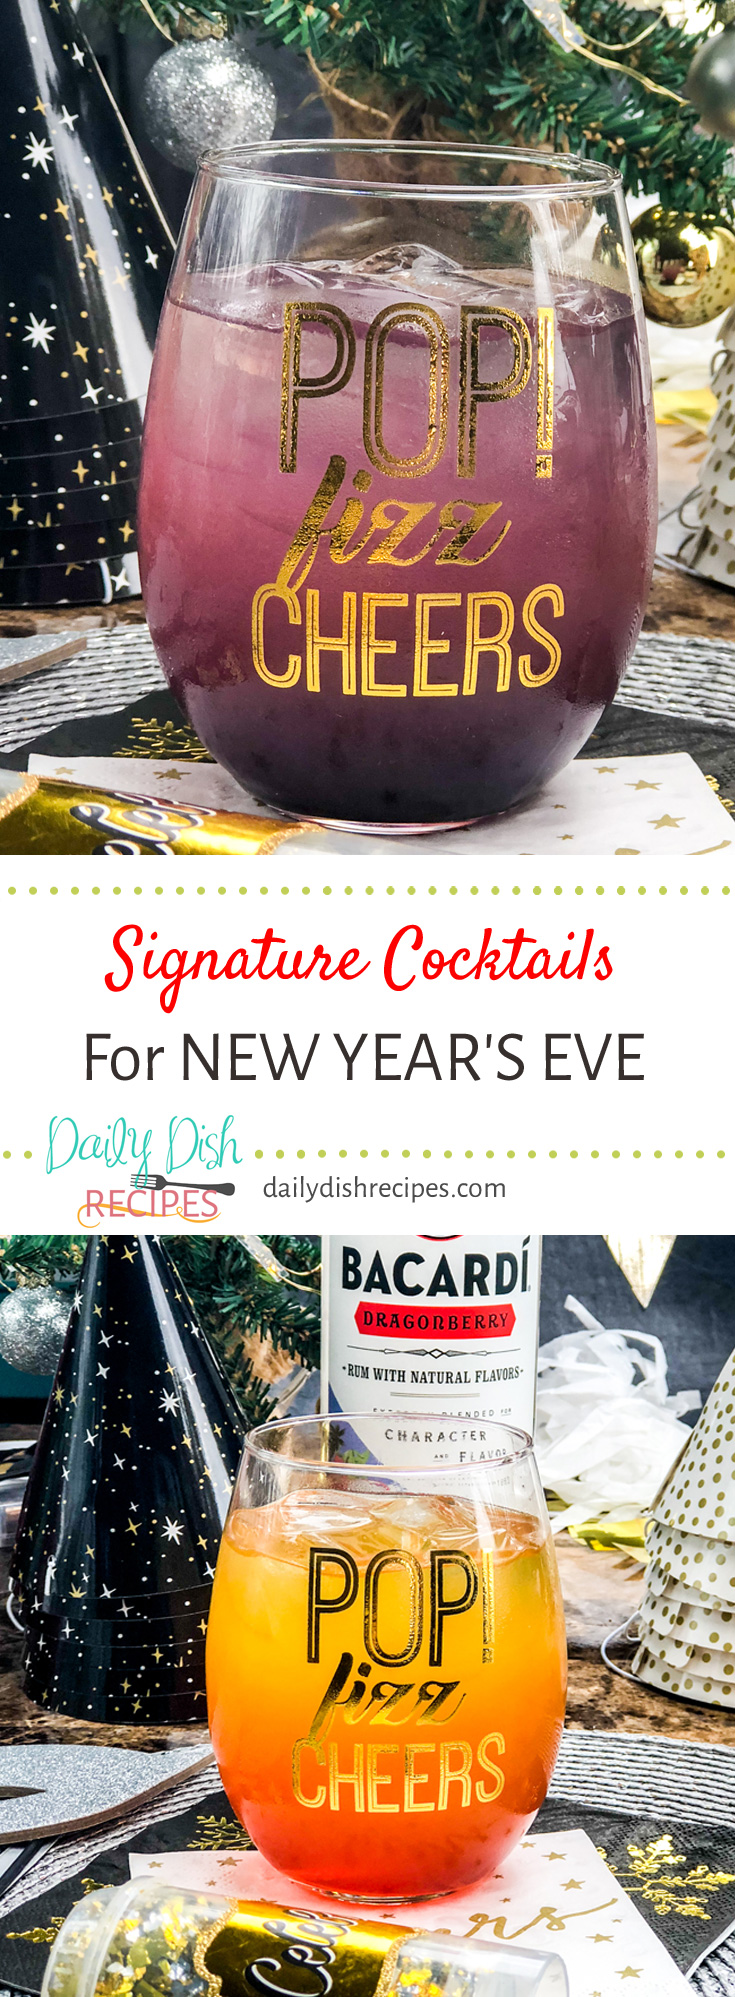 Msg 4 21+ Two Fruity Signature Cocktails for New Year's Eve! Try a Dragon's Breath or Dragon's Sunset for your next get together! #SignatureSips